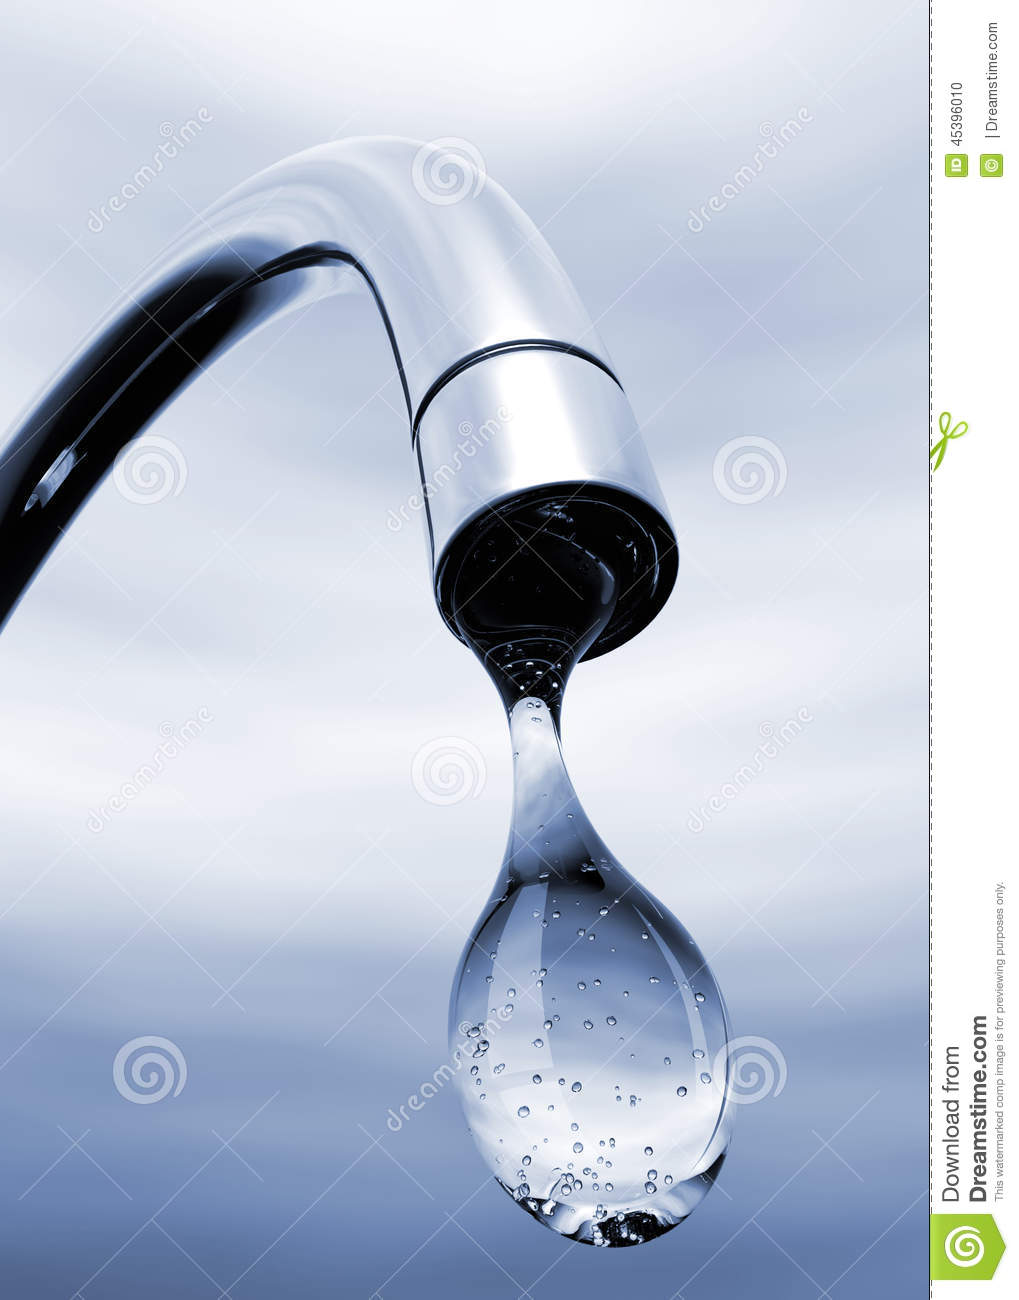 Water Drop Coming Out Of Tap Stock Illustration - Illustration of ...